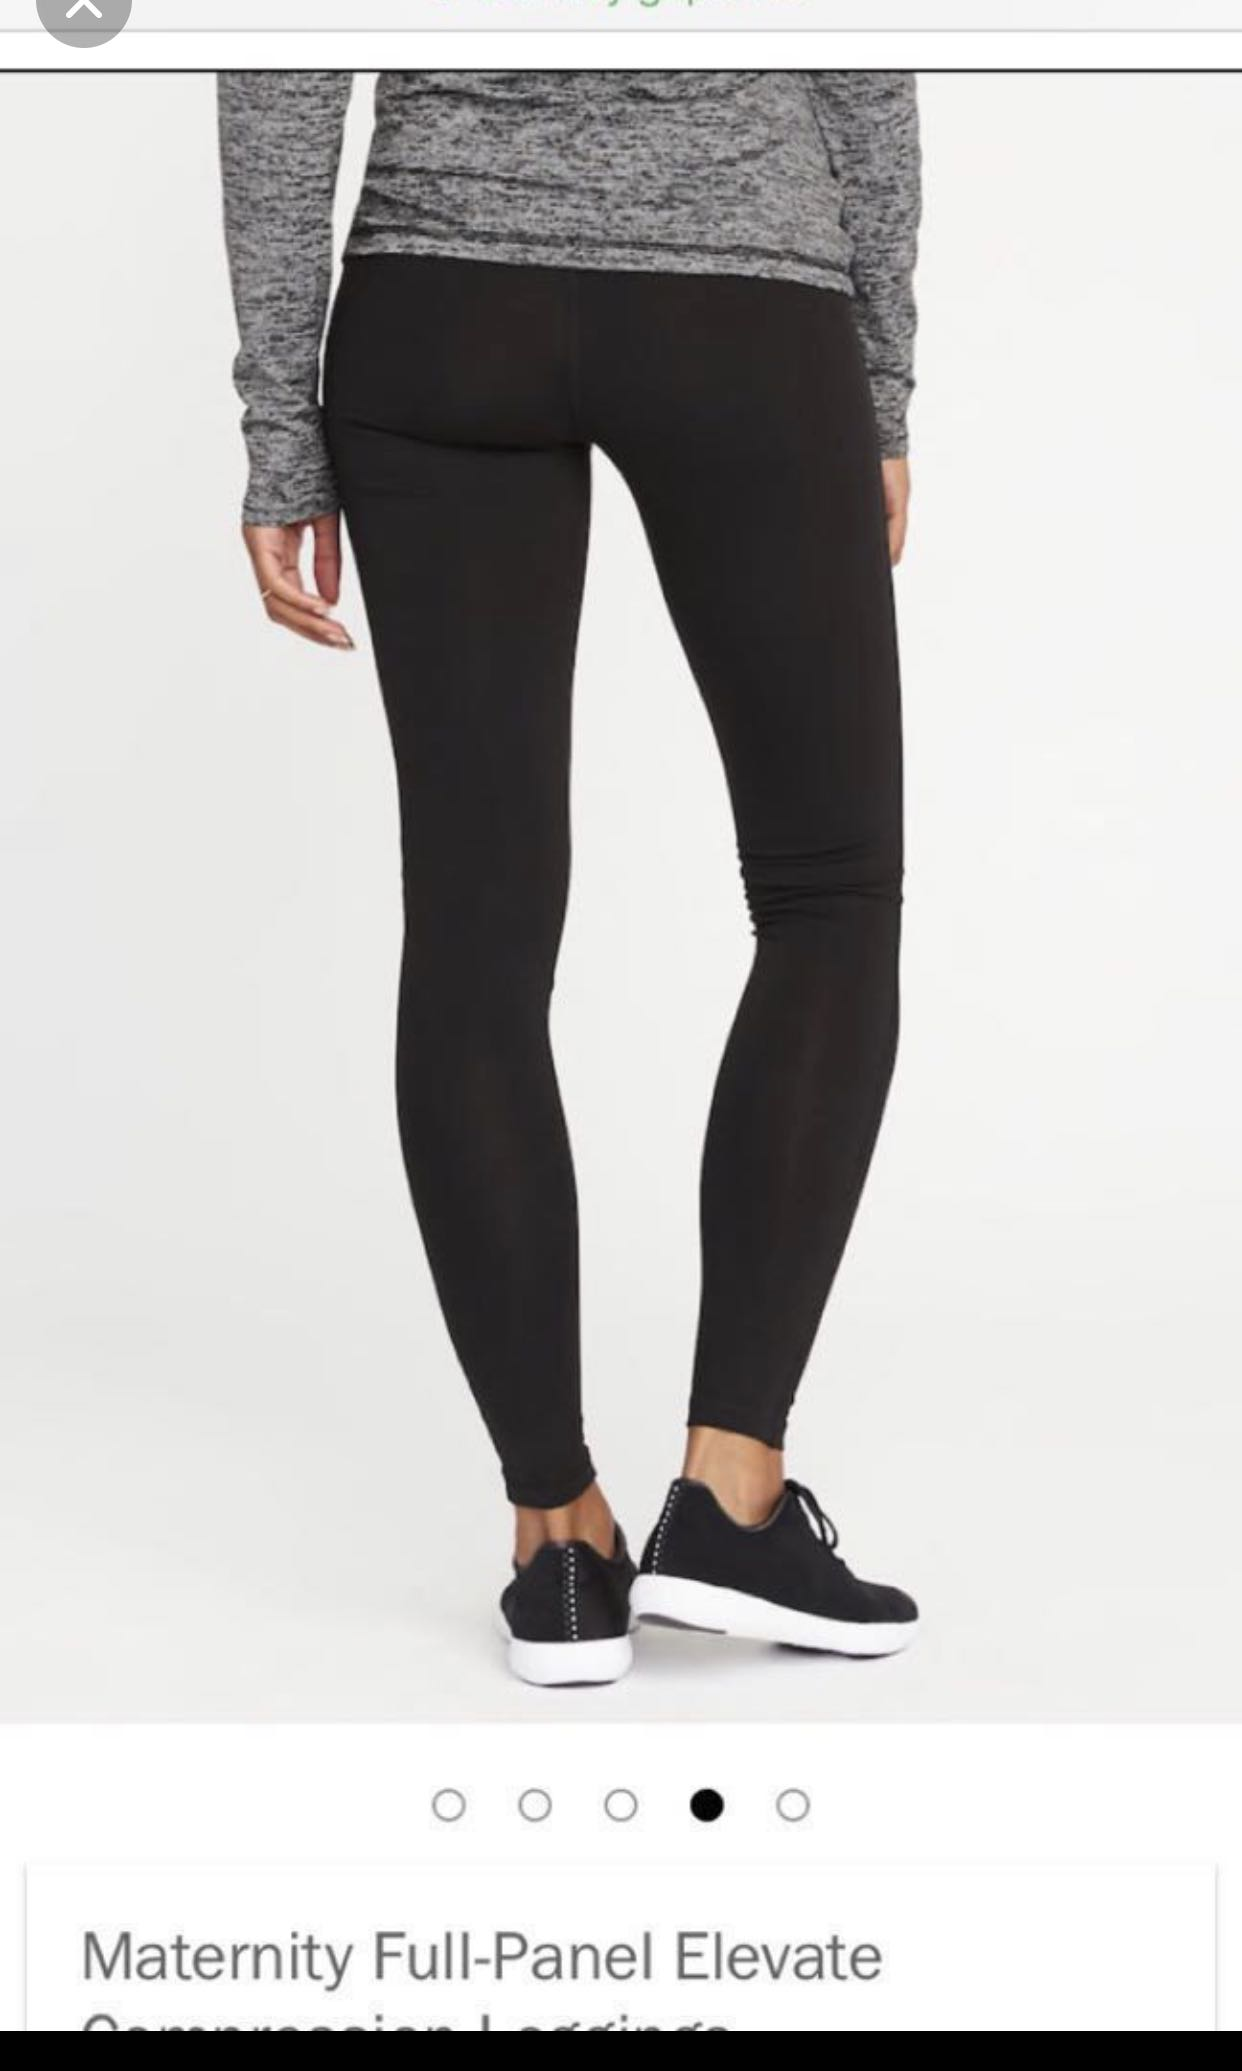 b021741b72906a Old navy Maternity black active sports compression leggings xs ...